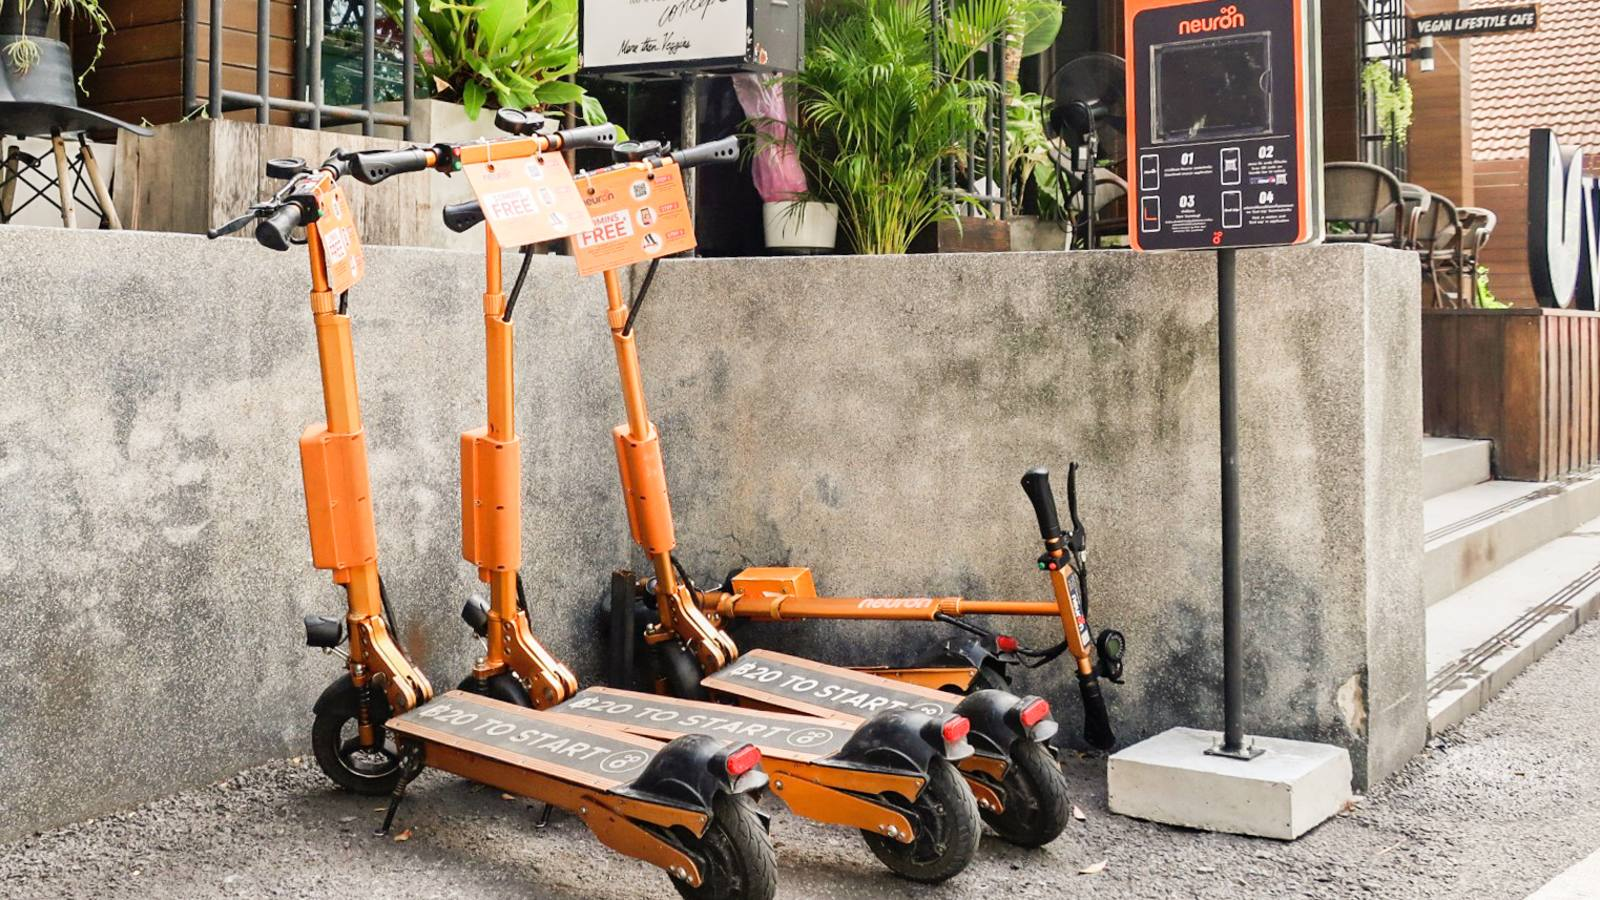 E-scooter sharing services help people get around in Thailand - Nikkei Asia